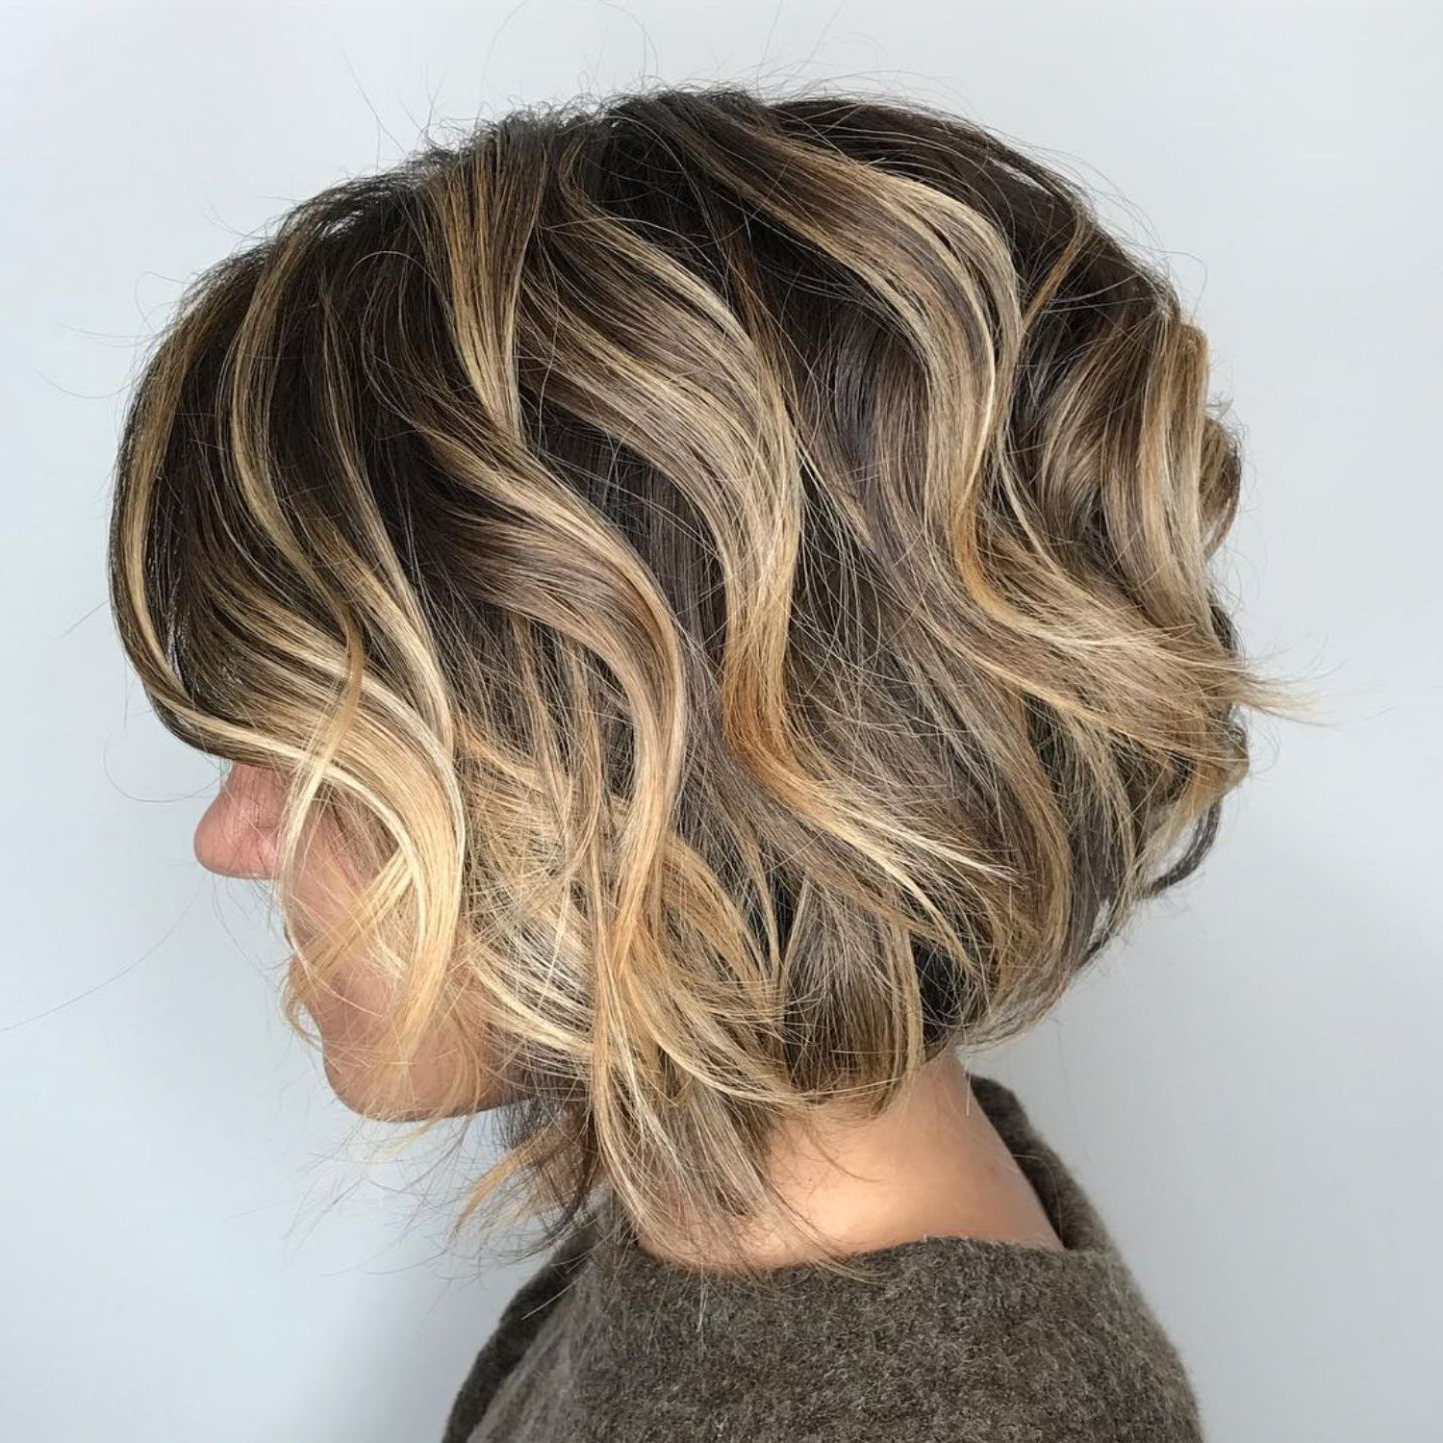 Preferred Curly Bronde Haircuts With Choppy Ends For 60 Layered Bob Styles: Modern Haircuts With Layers For Any (Gallery 3 of 20)